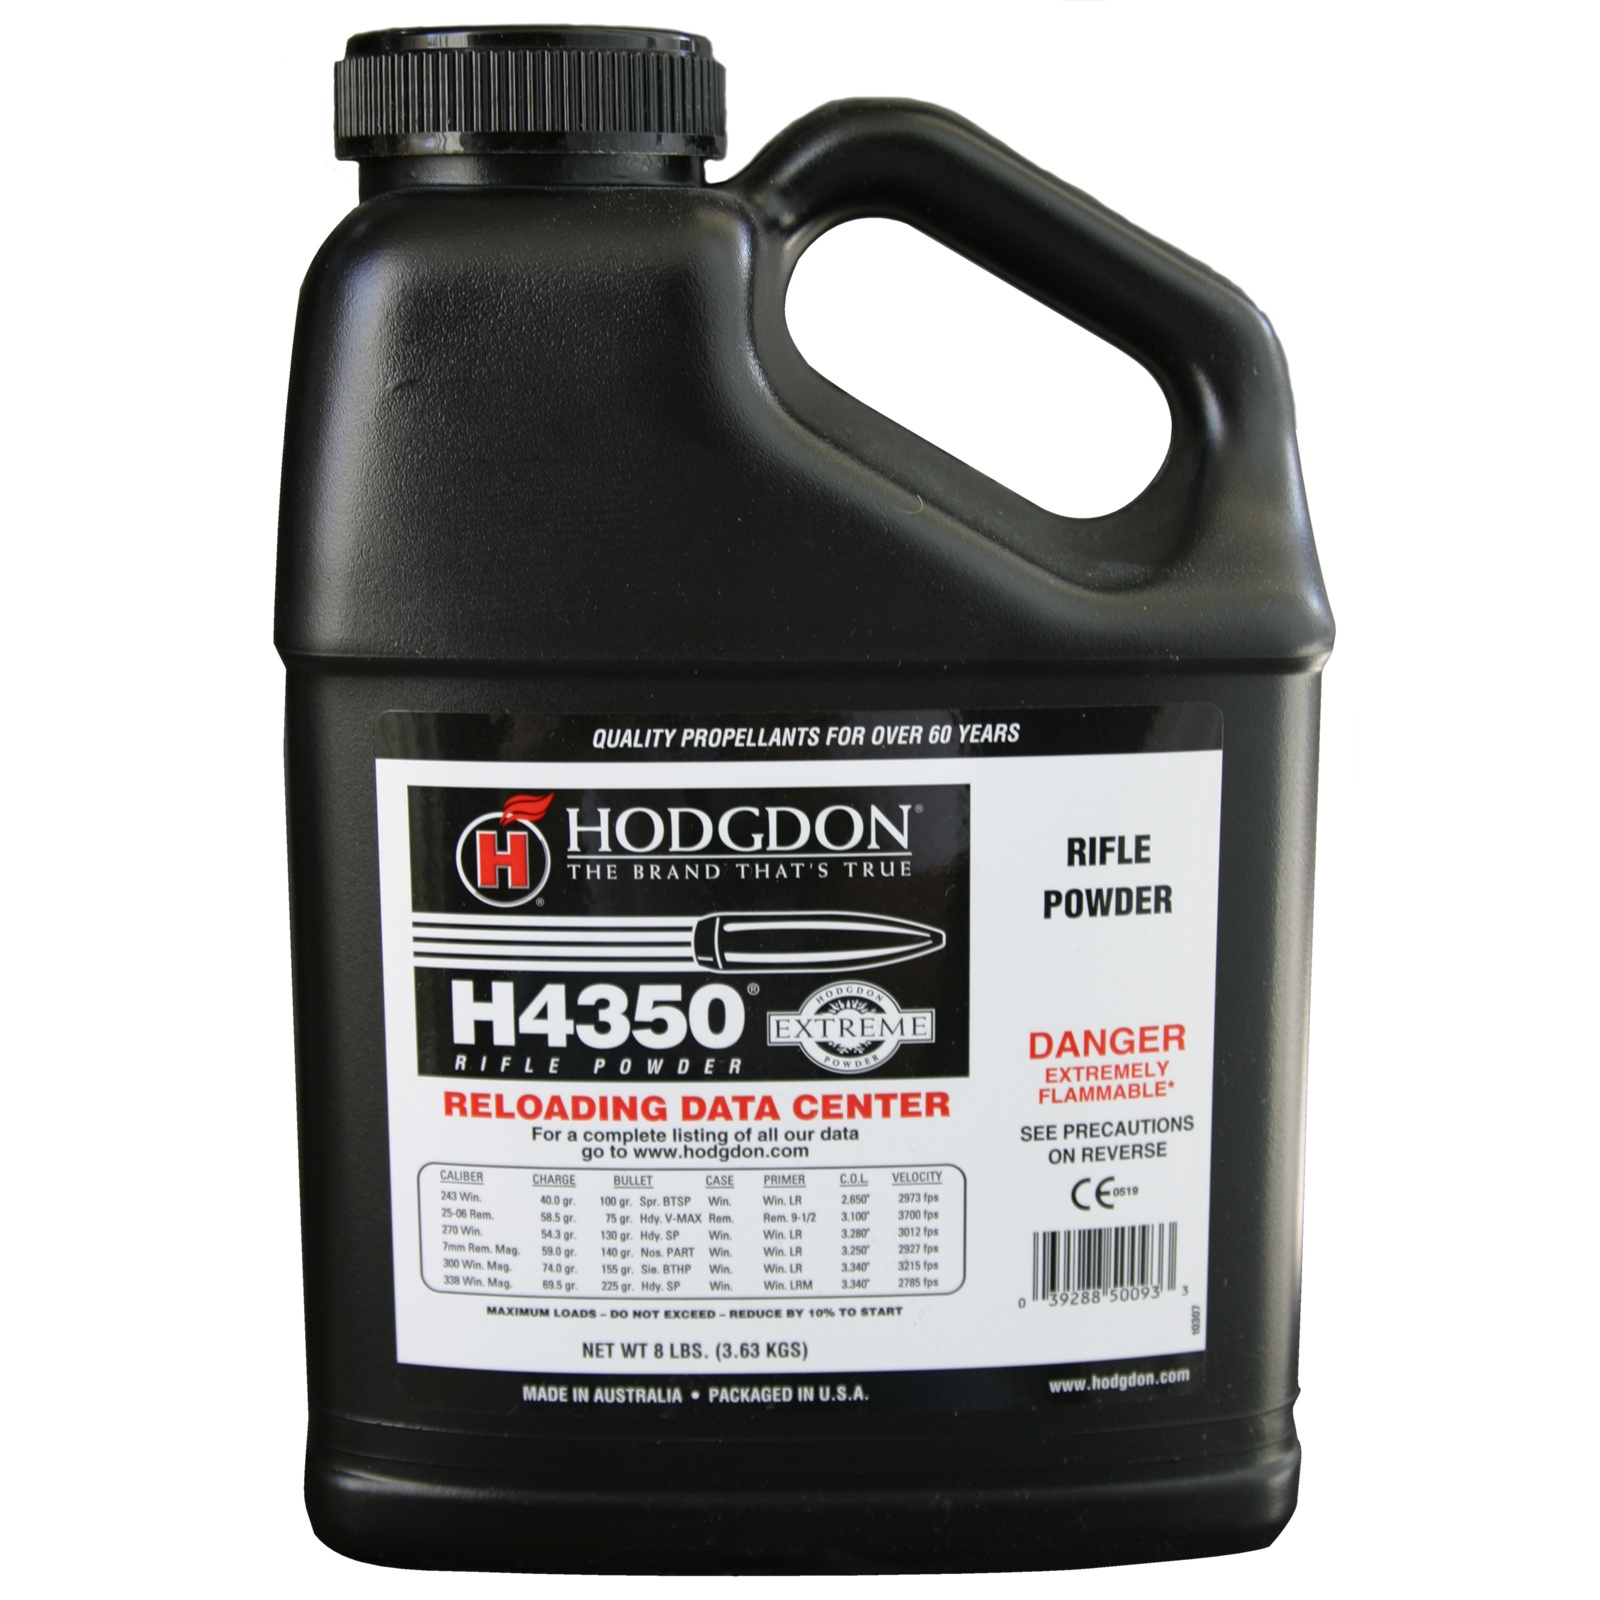 Hodgdon Extreme H4350 Rifle Powder 8 lbs